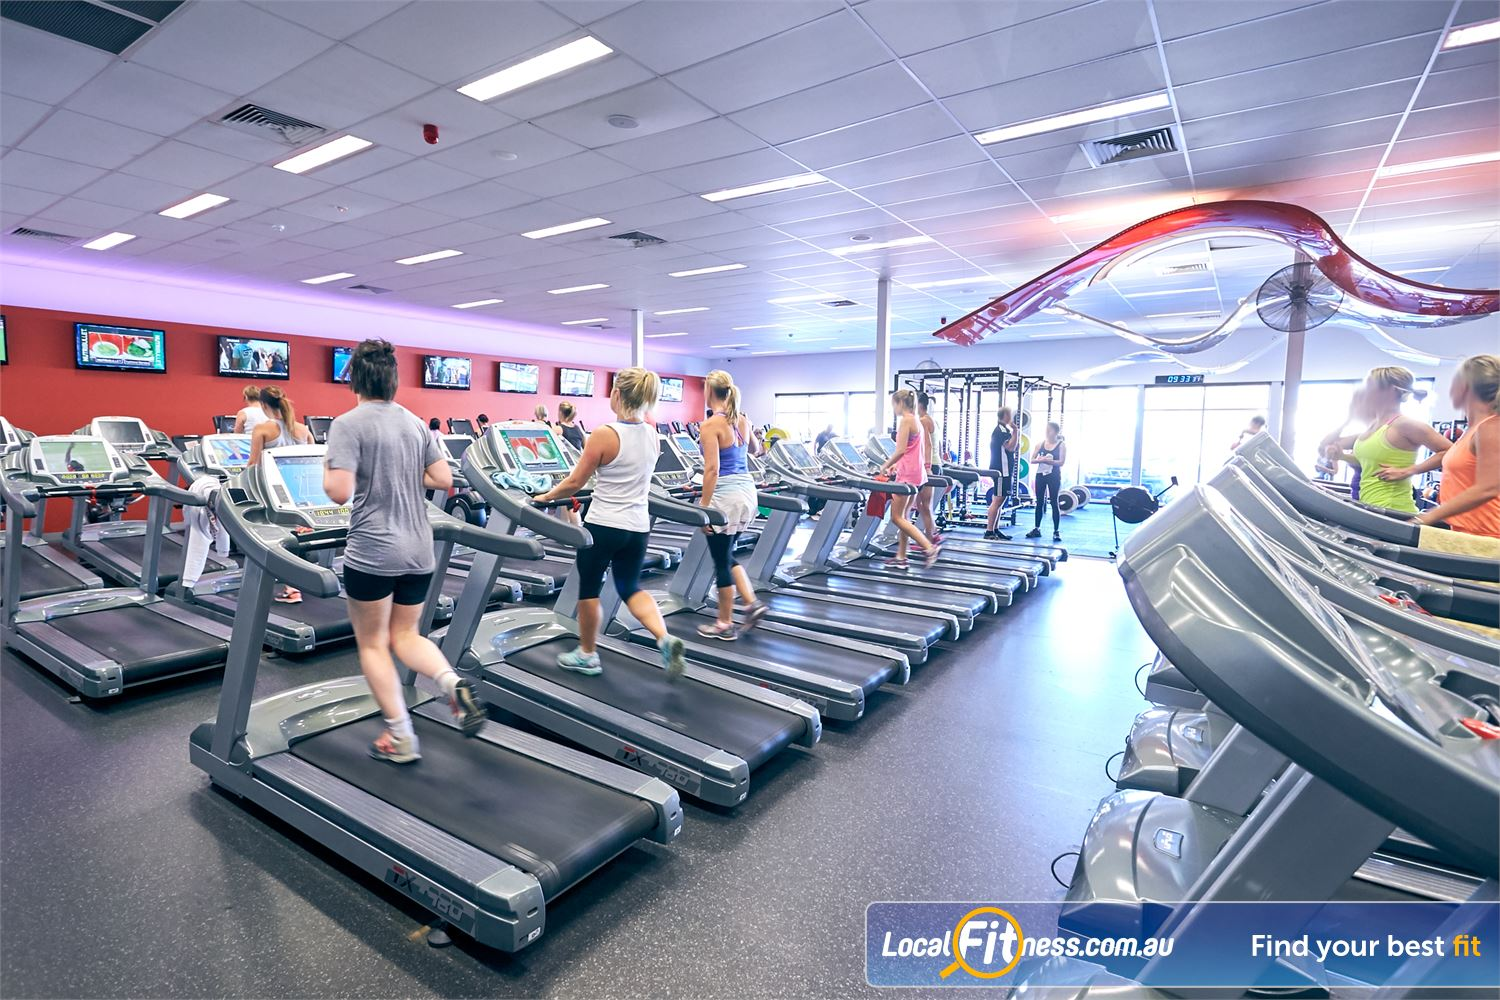 Goodlife Health Clubs Cross Roads Westbourne Park Tune into your favorite shows on your personalised LCD screen or cardio theatre.